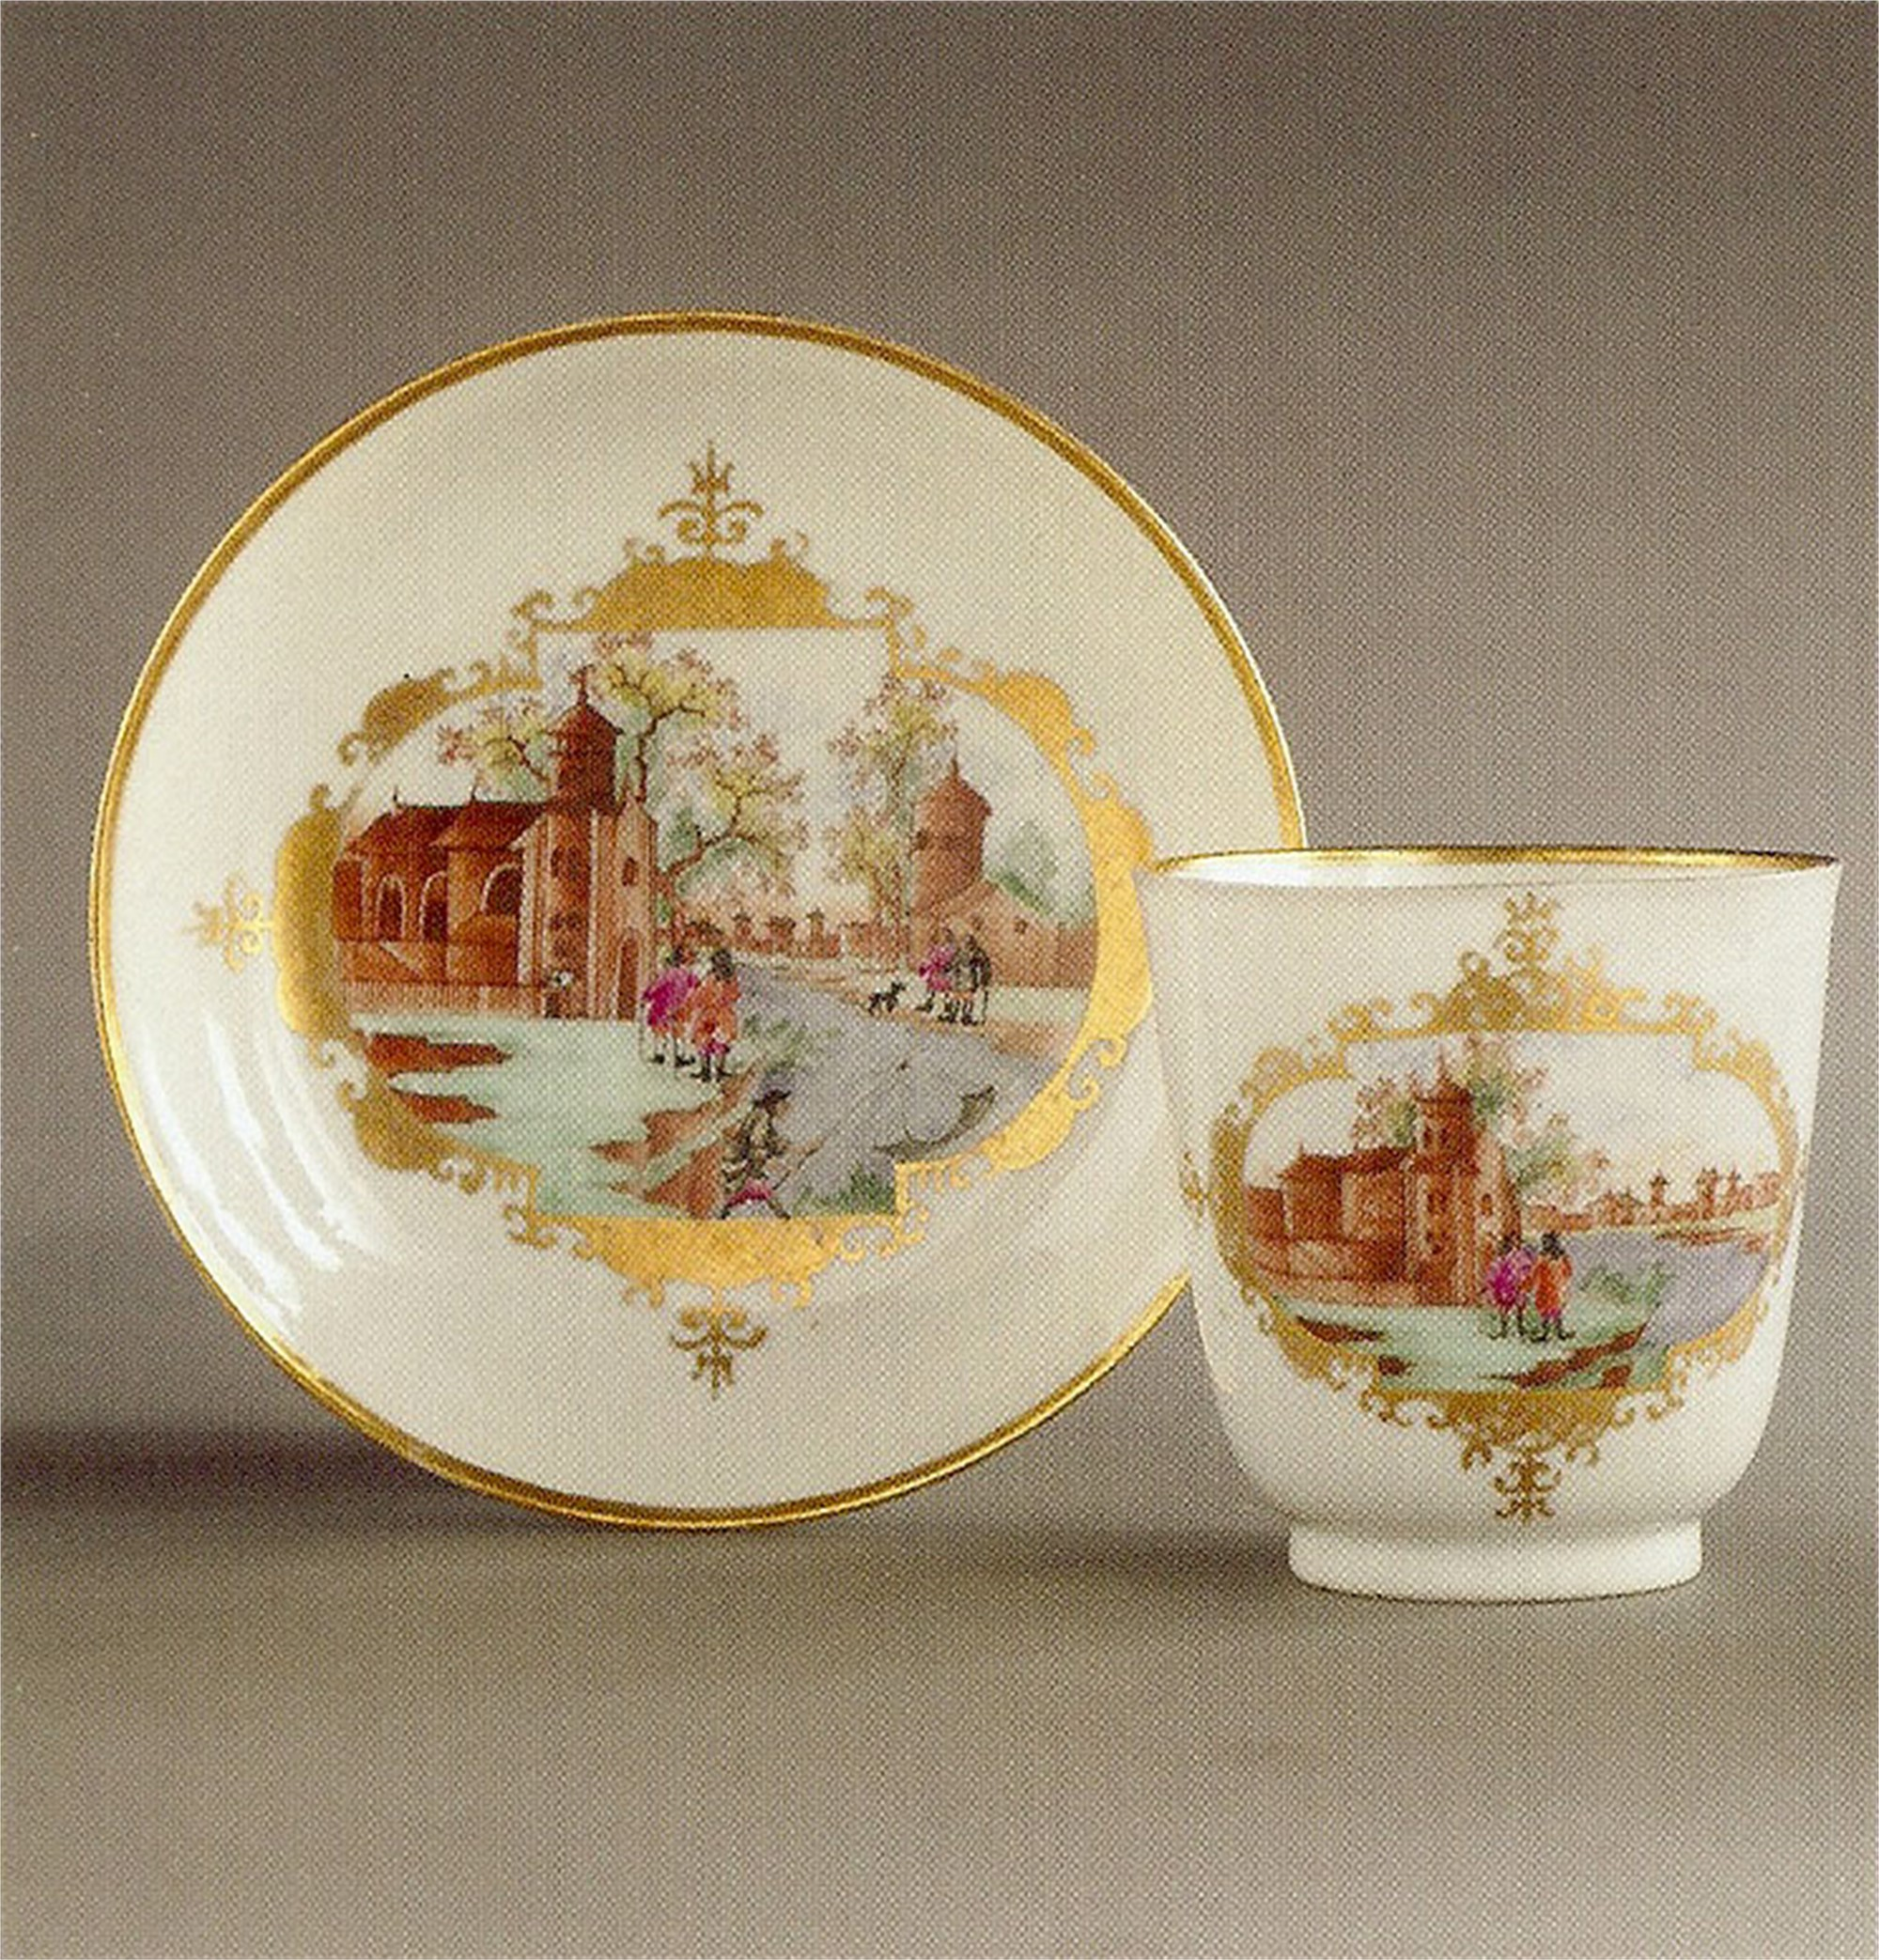 BEAKER AND SAUCER WITH MEISSEN-STYLE HARBOR SCENE